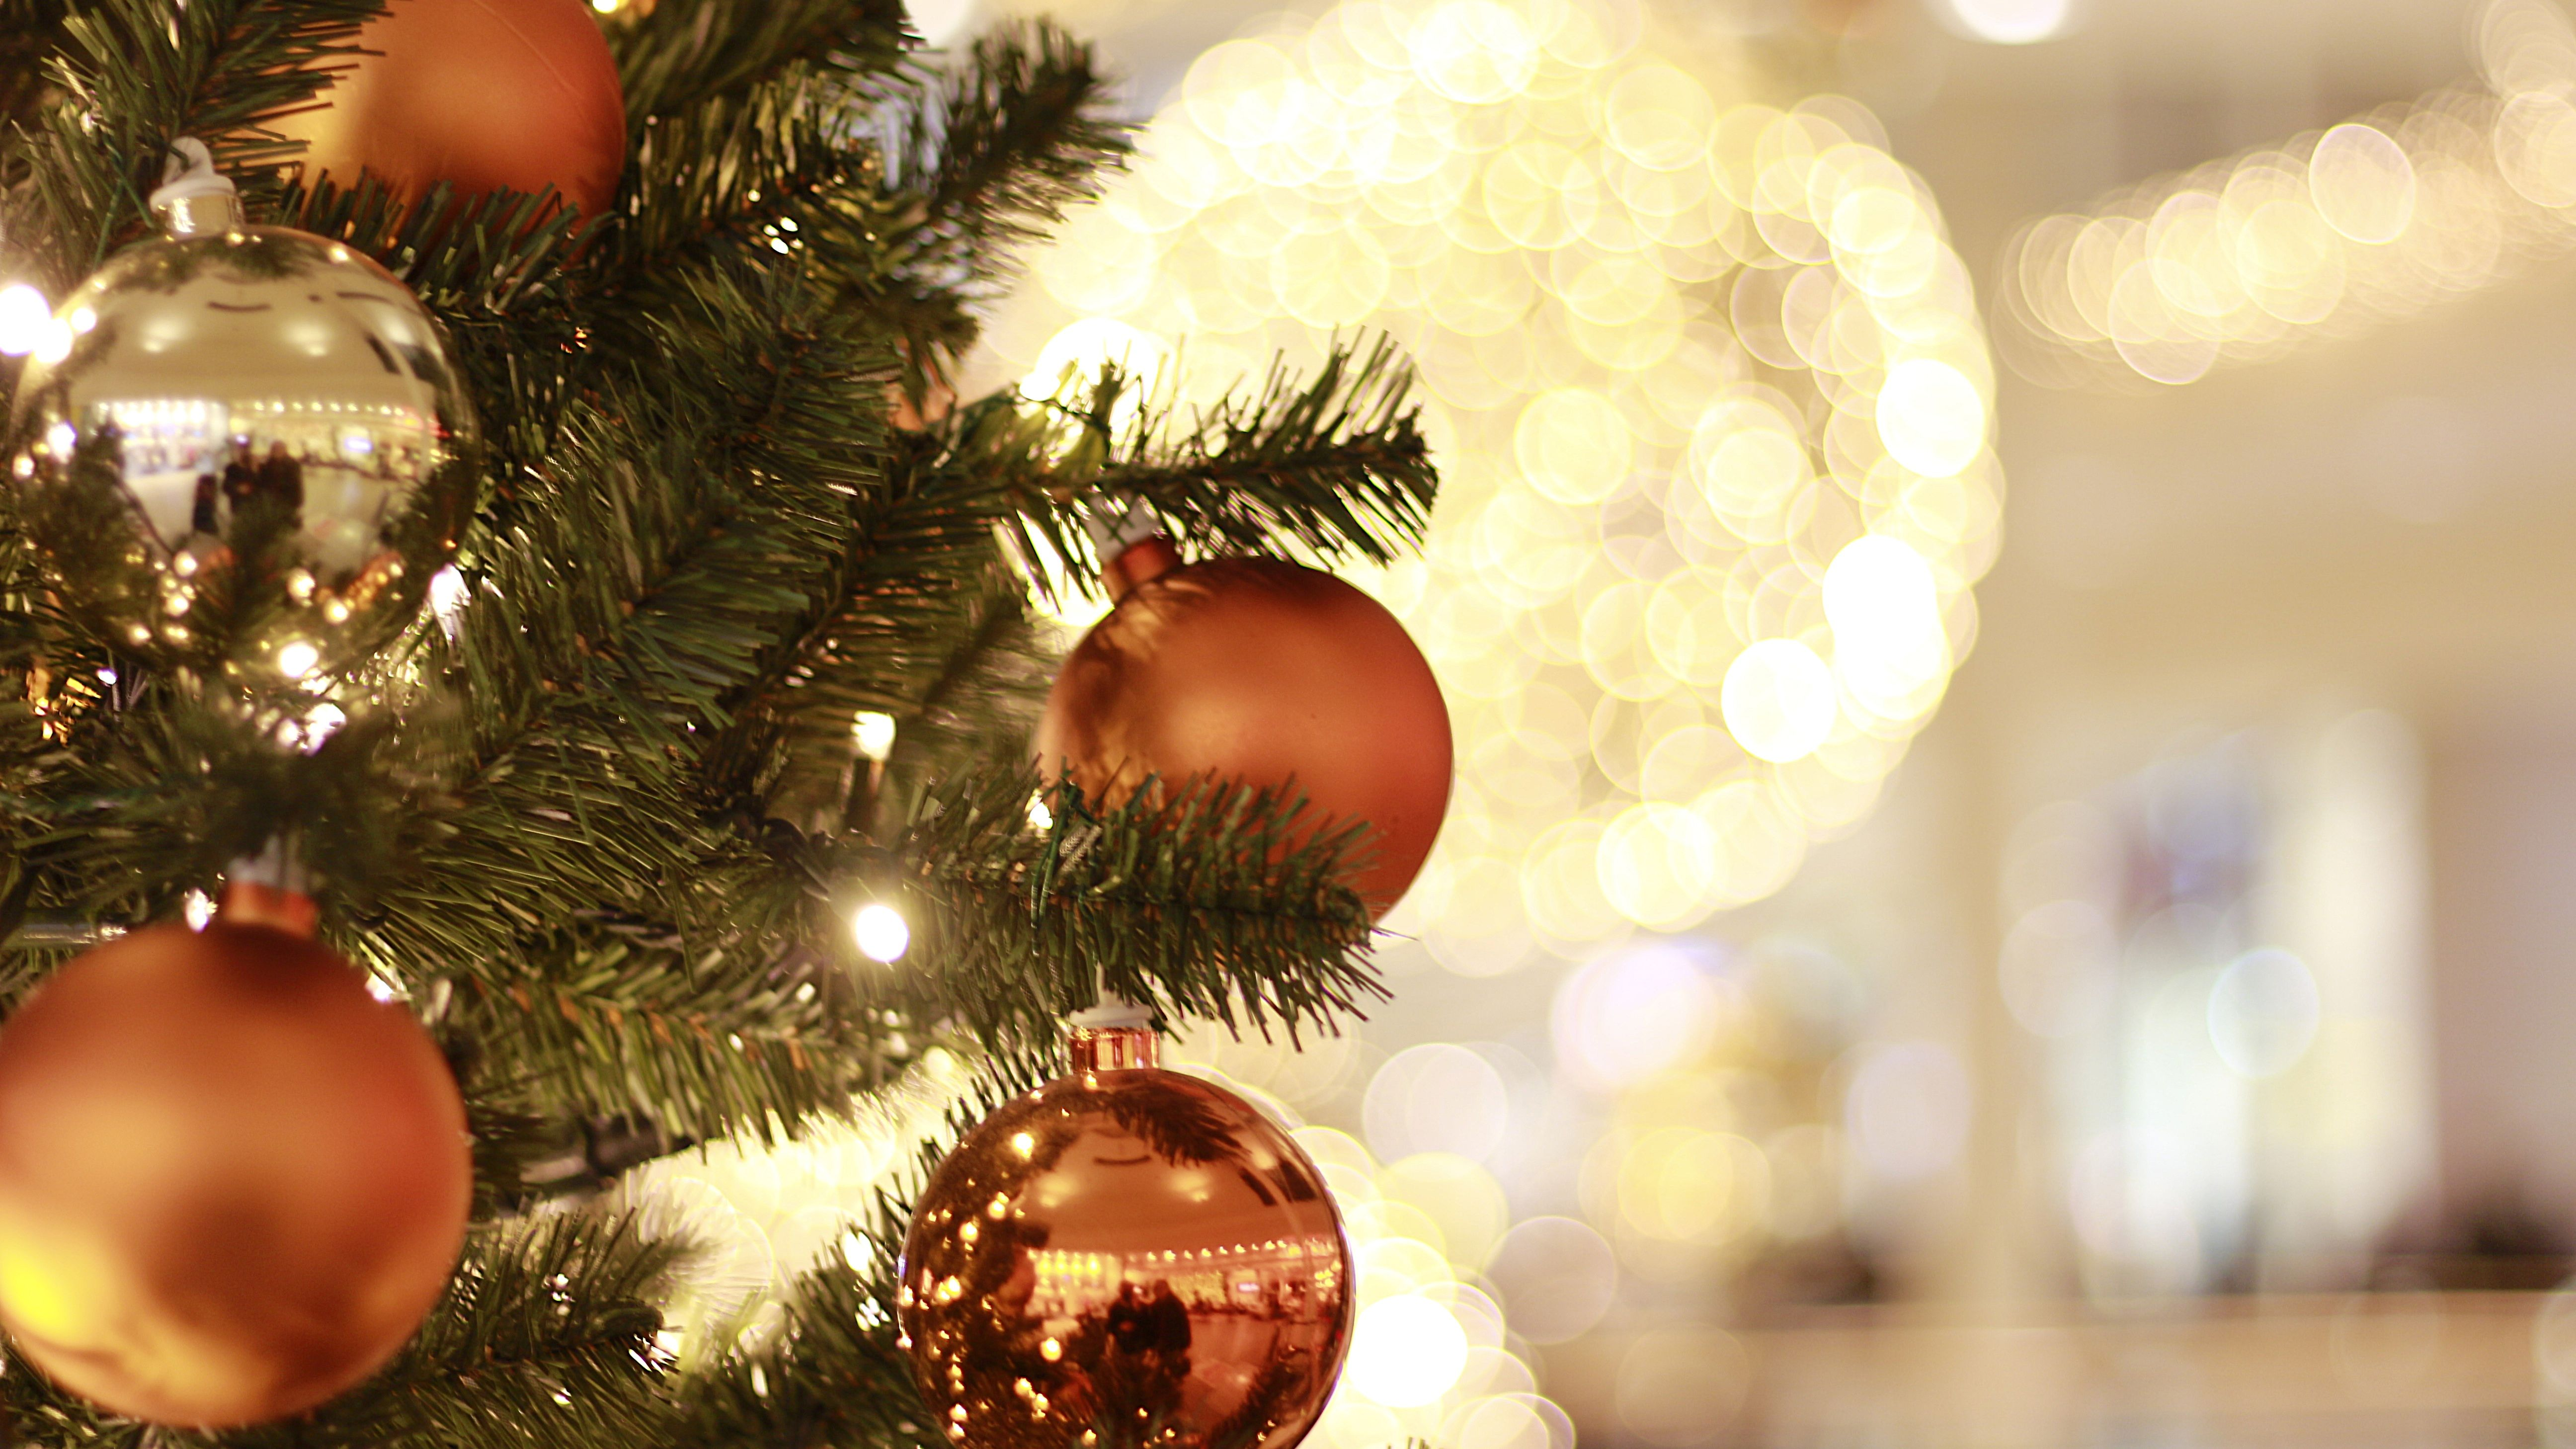 Stupendous The 12 Best Christmas Tree Ornaments Of 2019 Download Free Architecture Designs Scobabritishbridgeorg